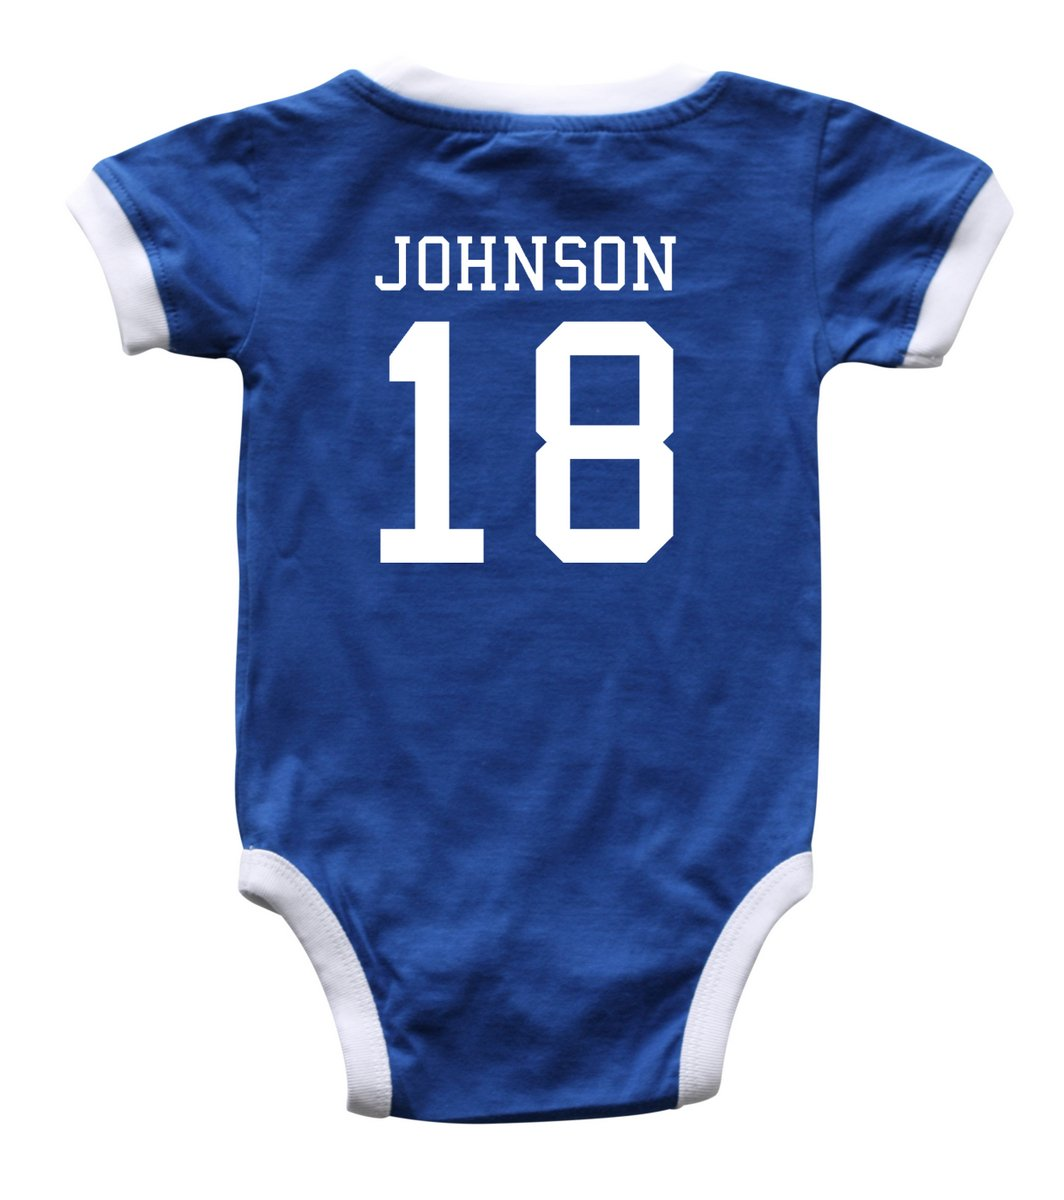 Rocket Bug Custom Soccer Sport Jersey Baby Bodysuit Personalized With Name and Number (12M (6-12 Months), Royal Blue)